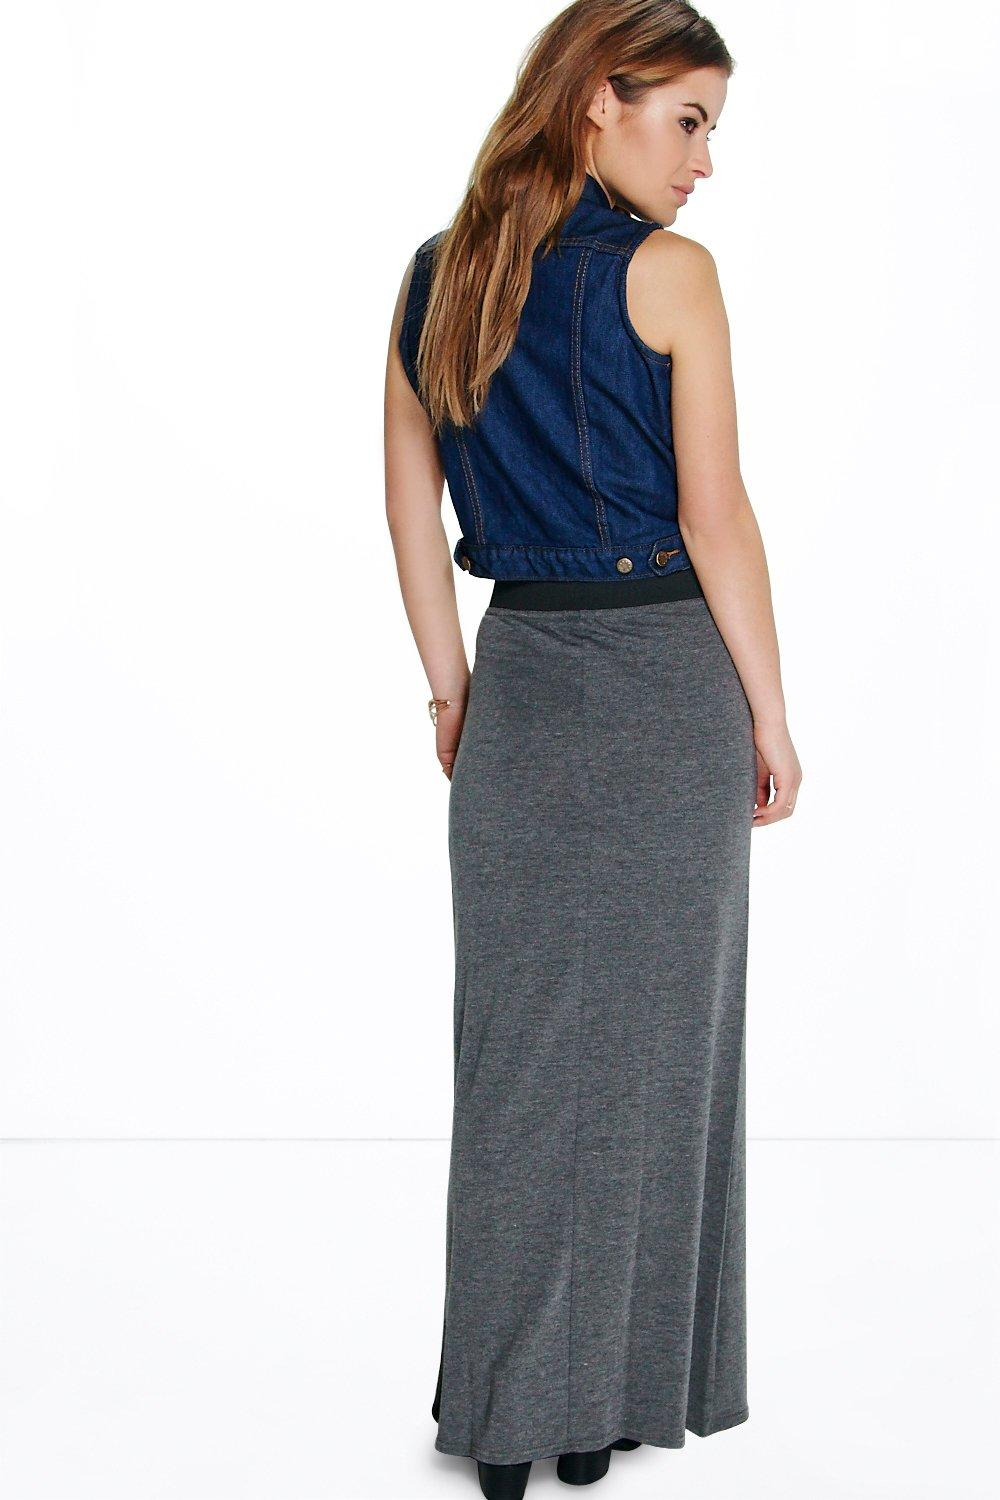 Womens Petite Clothing. How's this for a petite treat: we now offer over styles of petite women's clothing that are specially fit for smaller frames (5'3